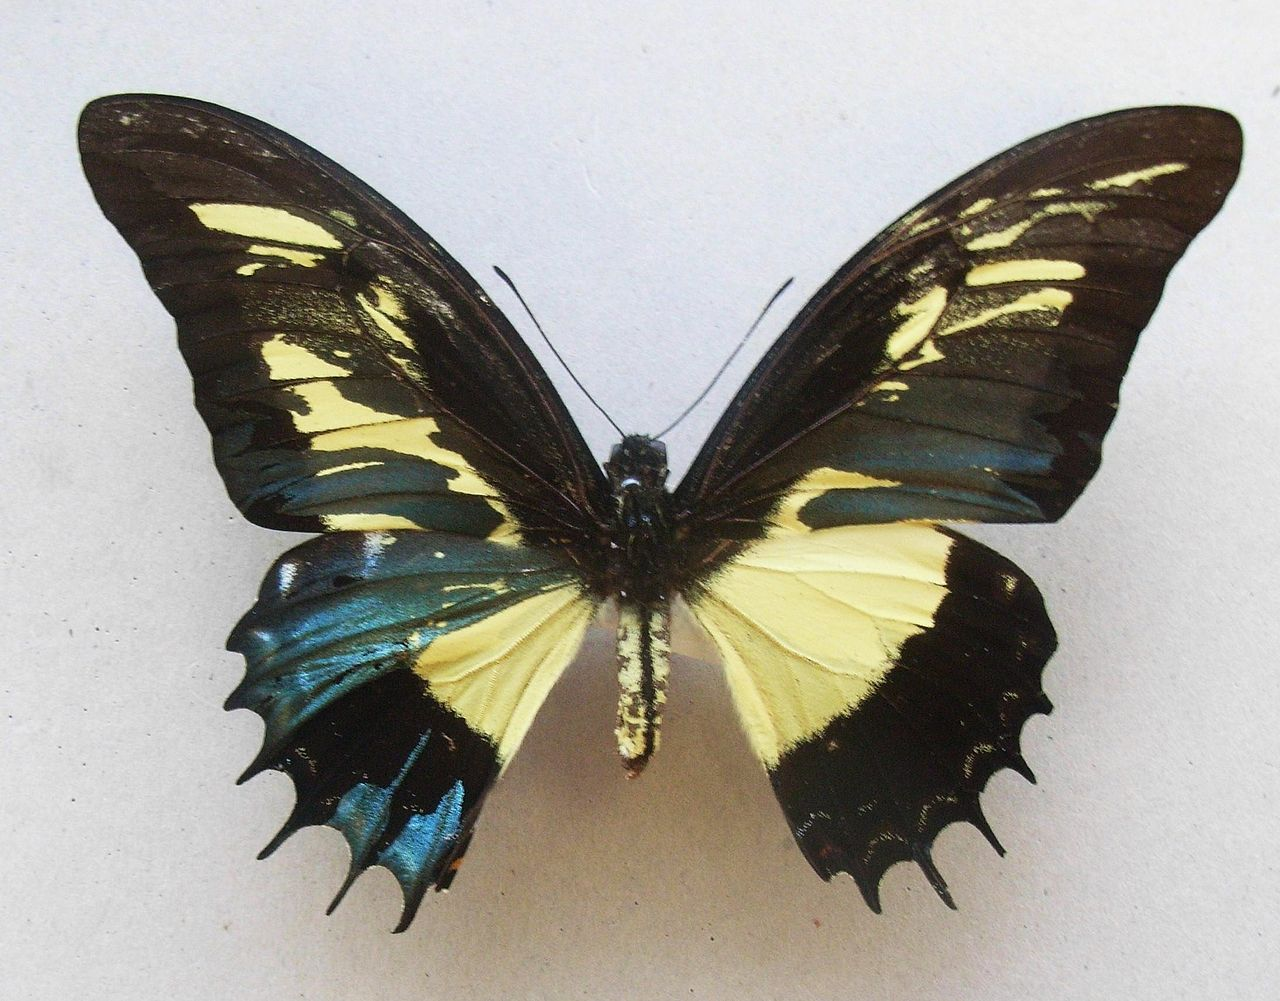 Gynandromorph butterfly (source)